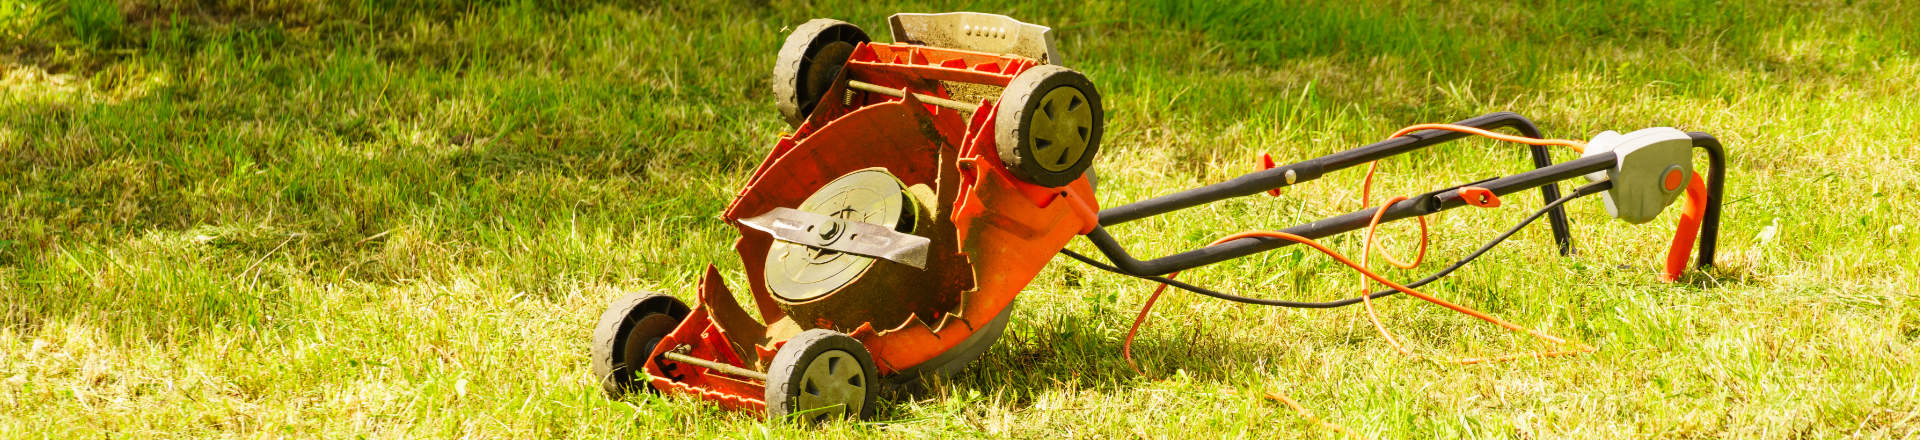 defective lawn mower